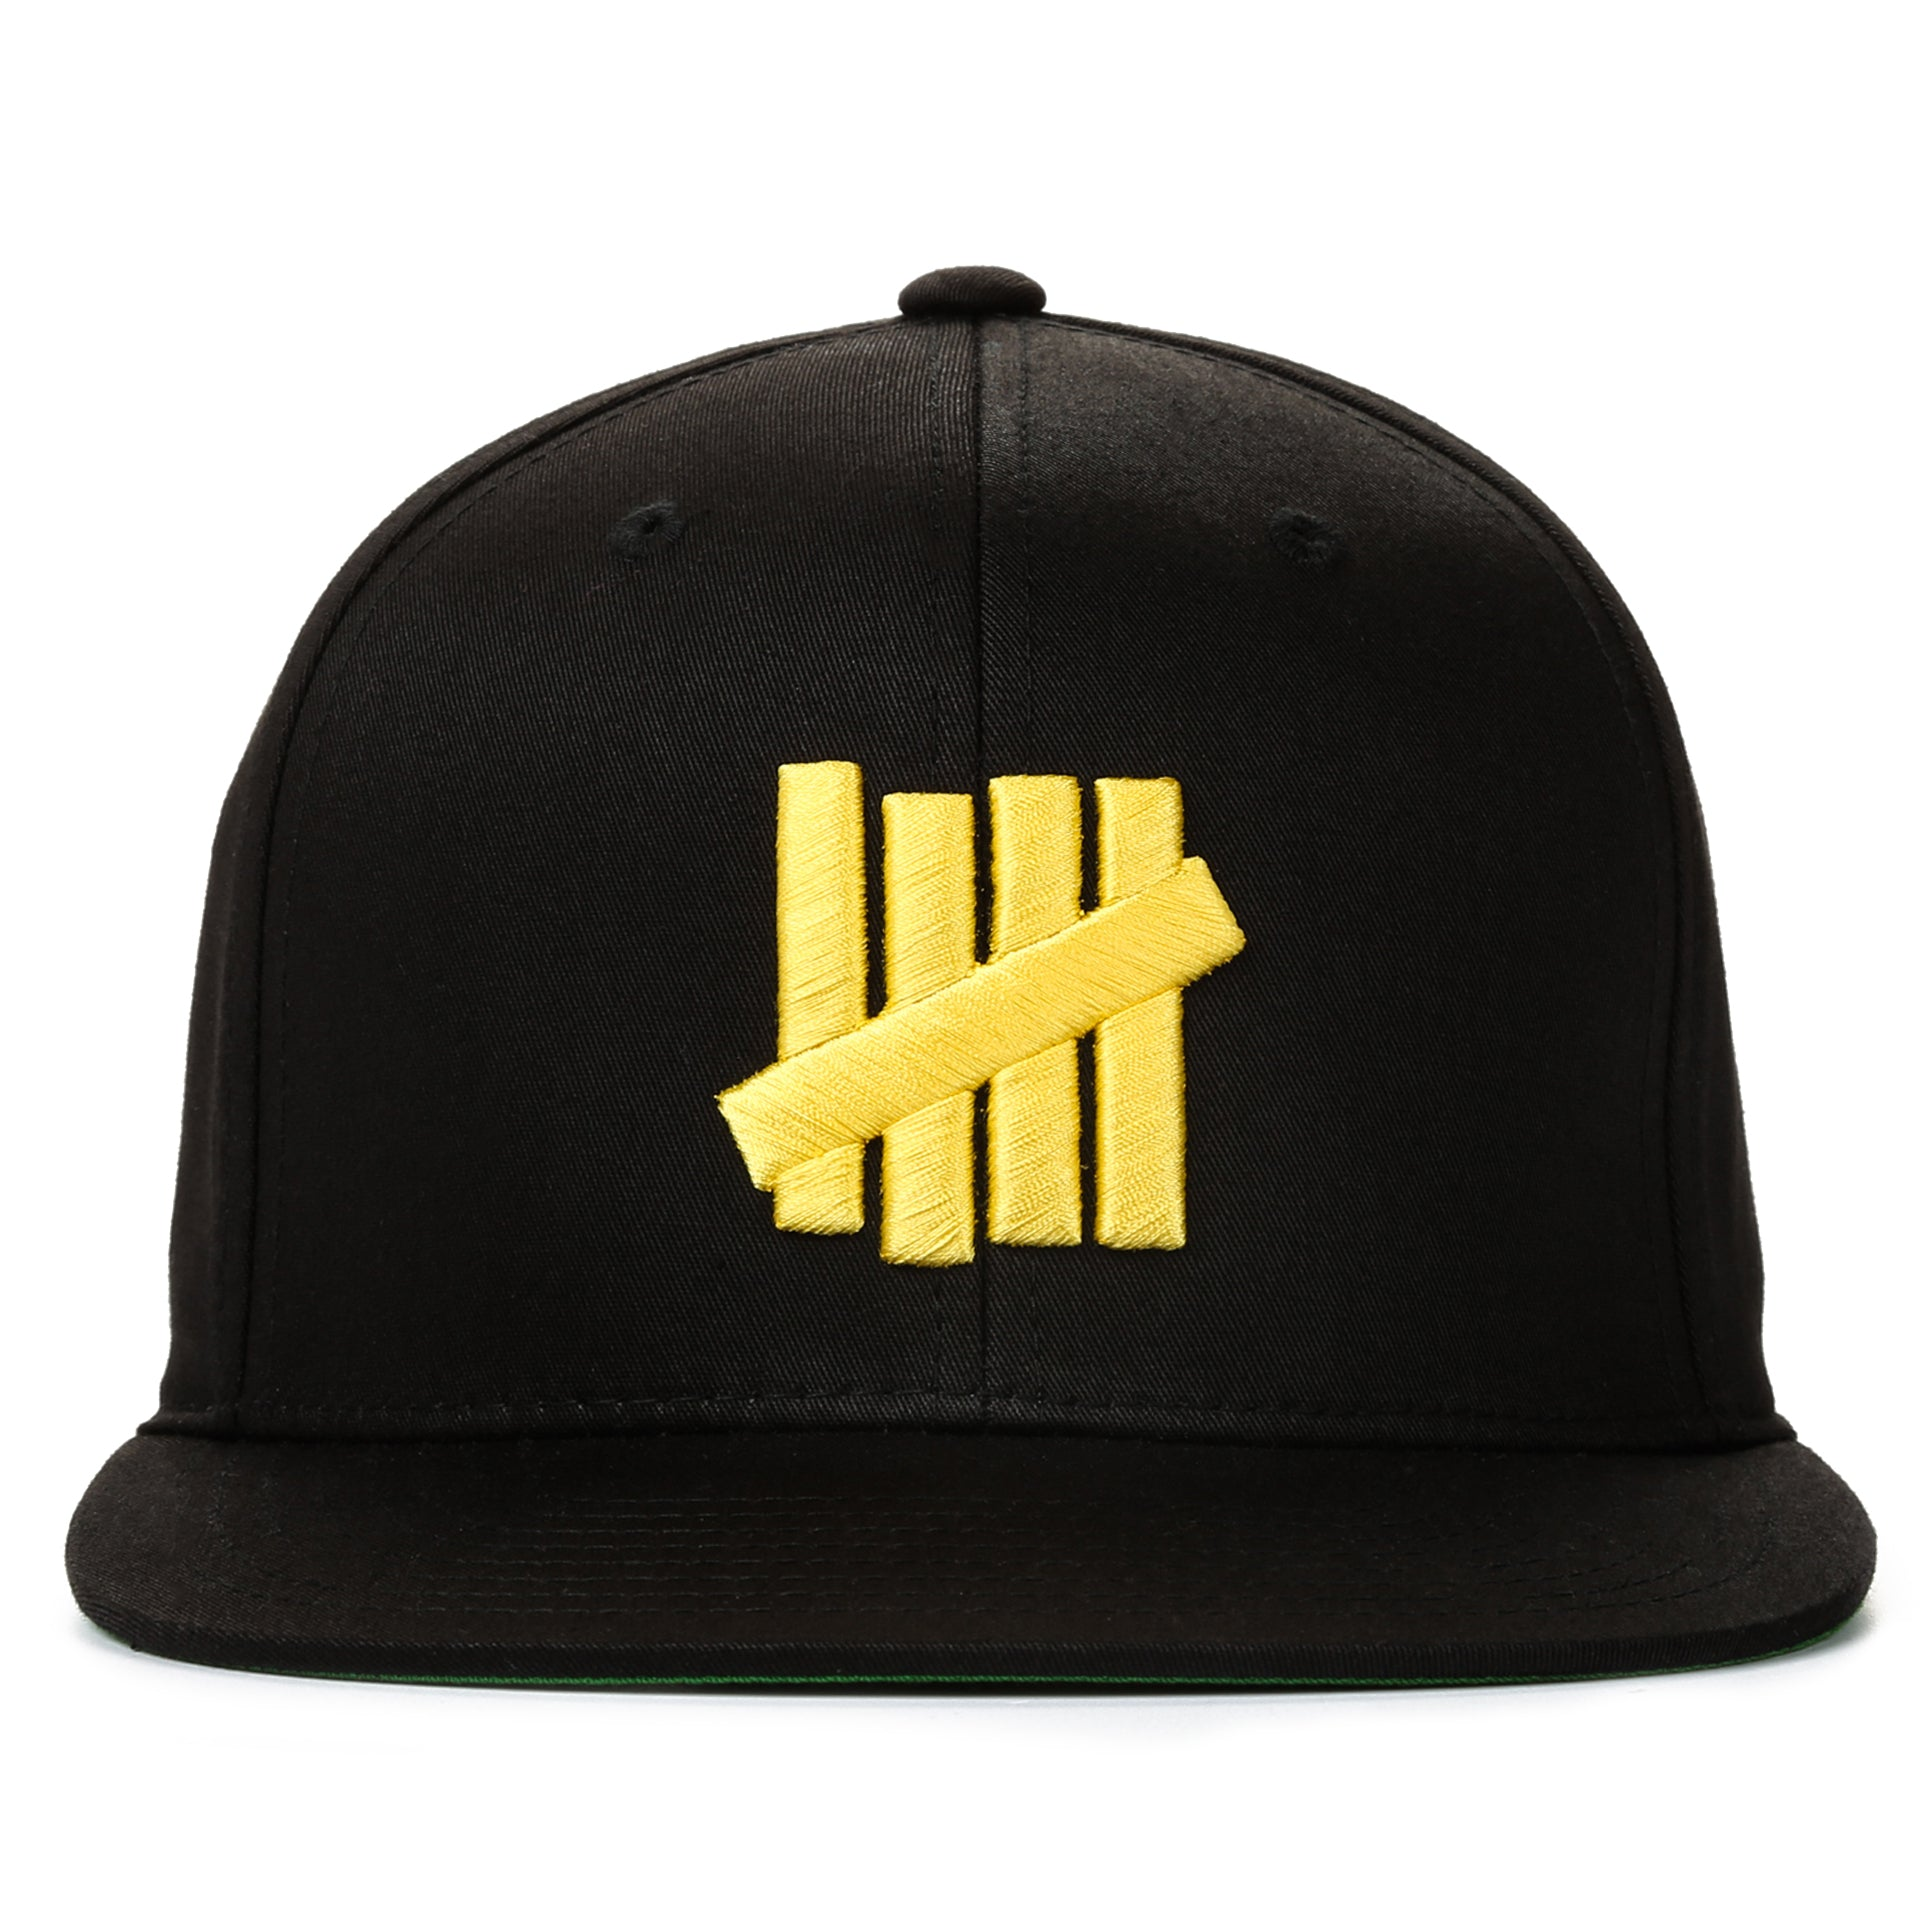 2d77a68c where to buy undefeated 5 strike snapback black yellow 03839 5ad67